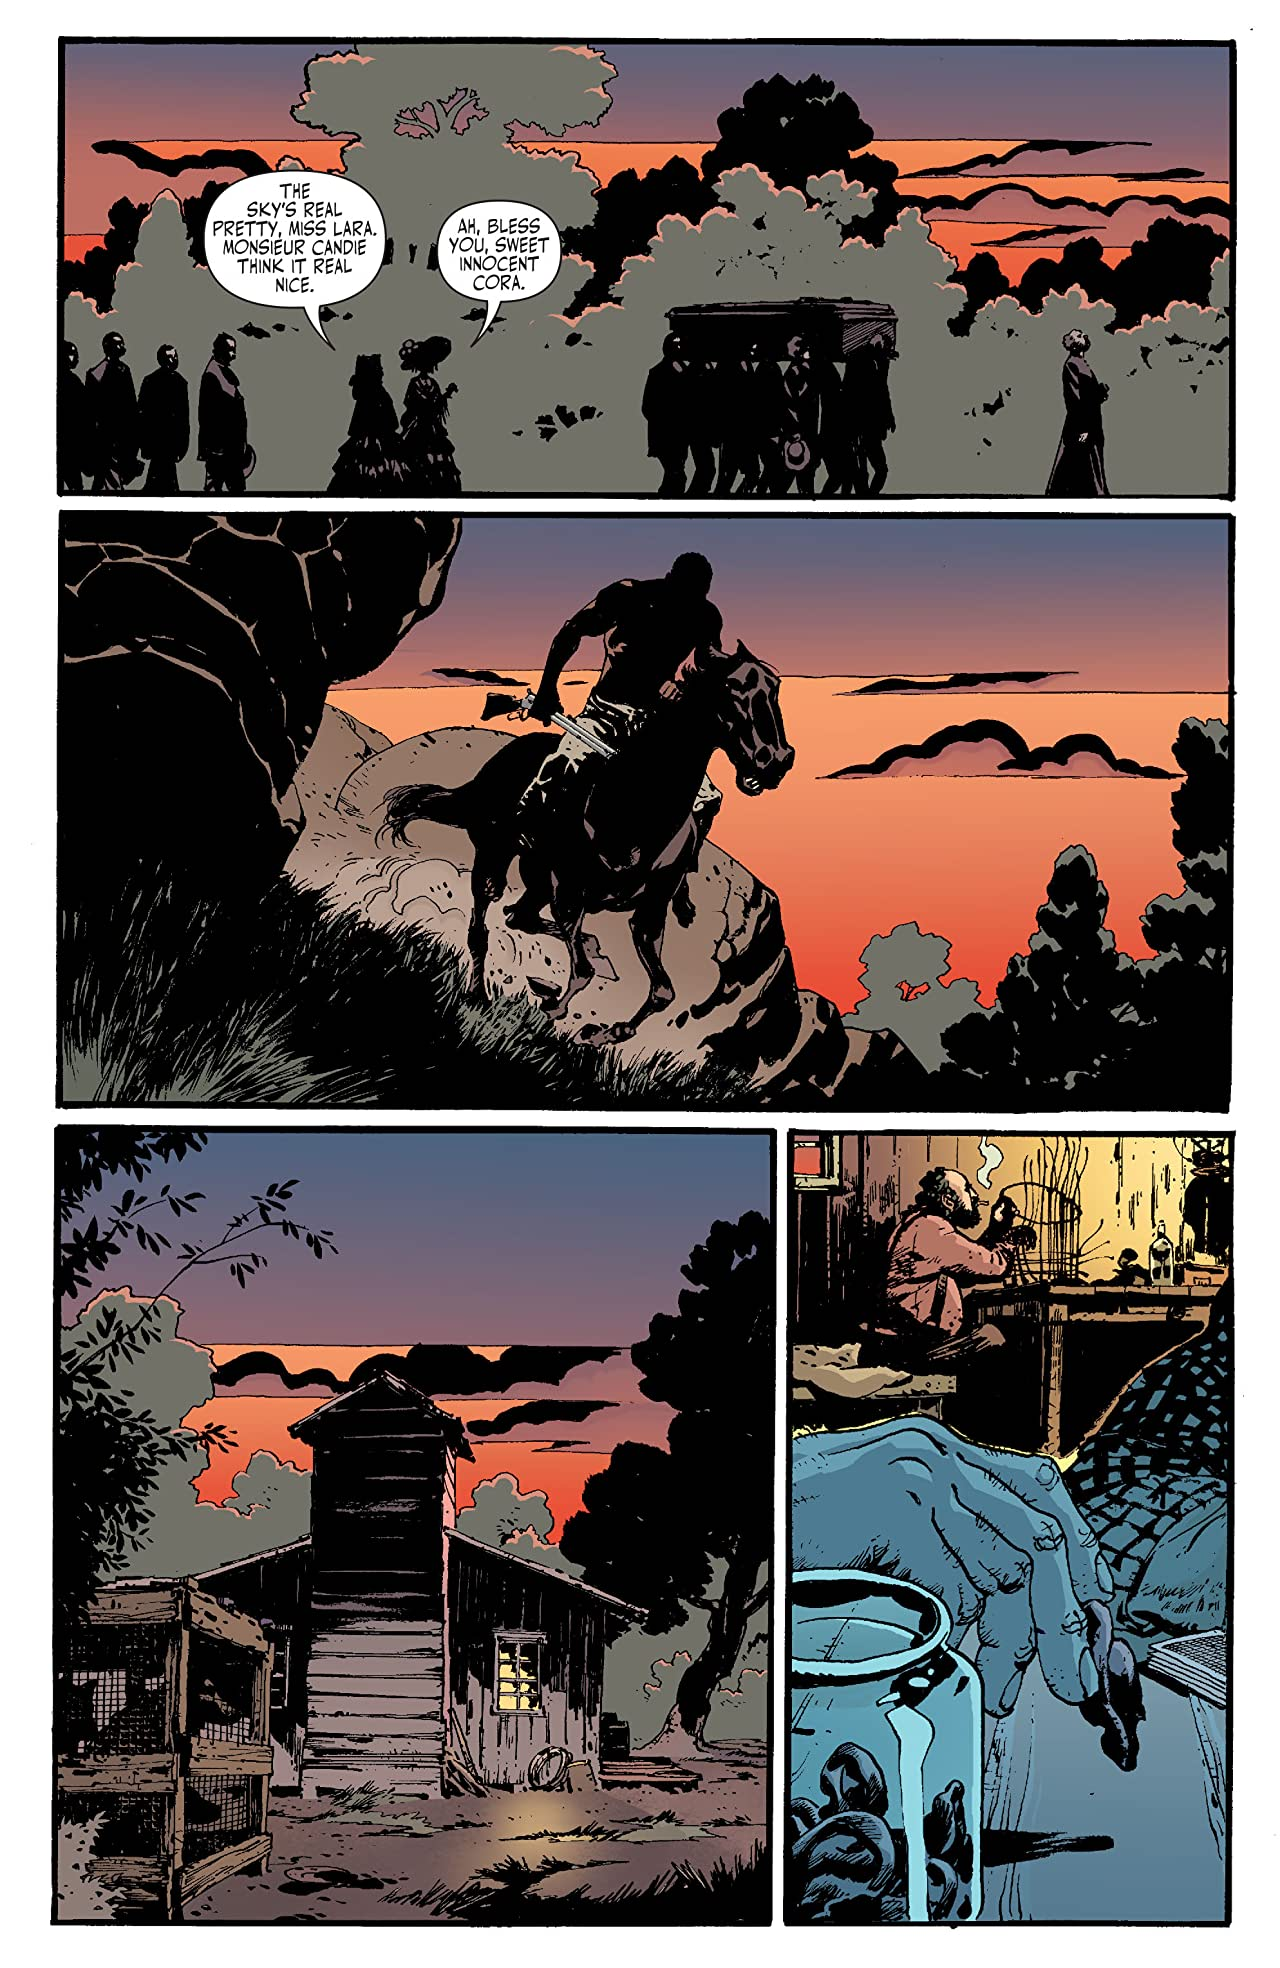 Django Unchained #7 (of 7)